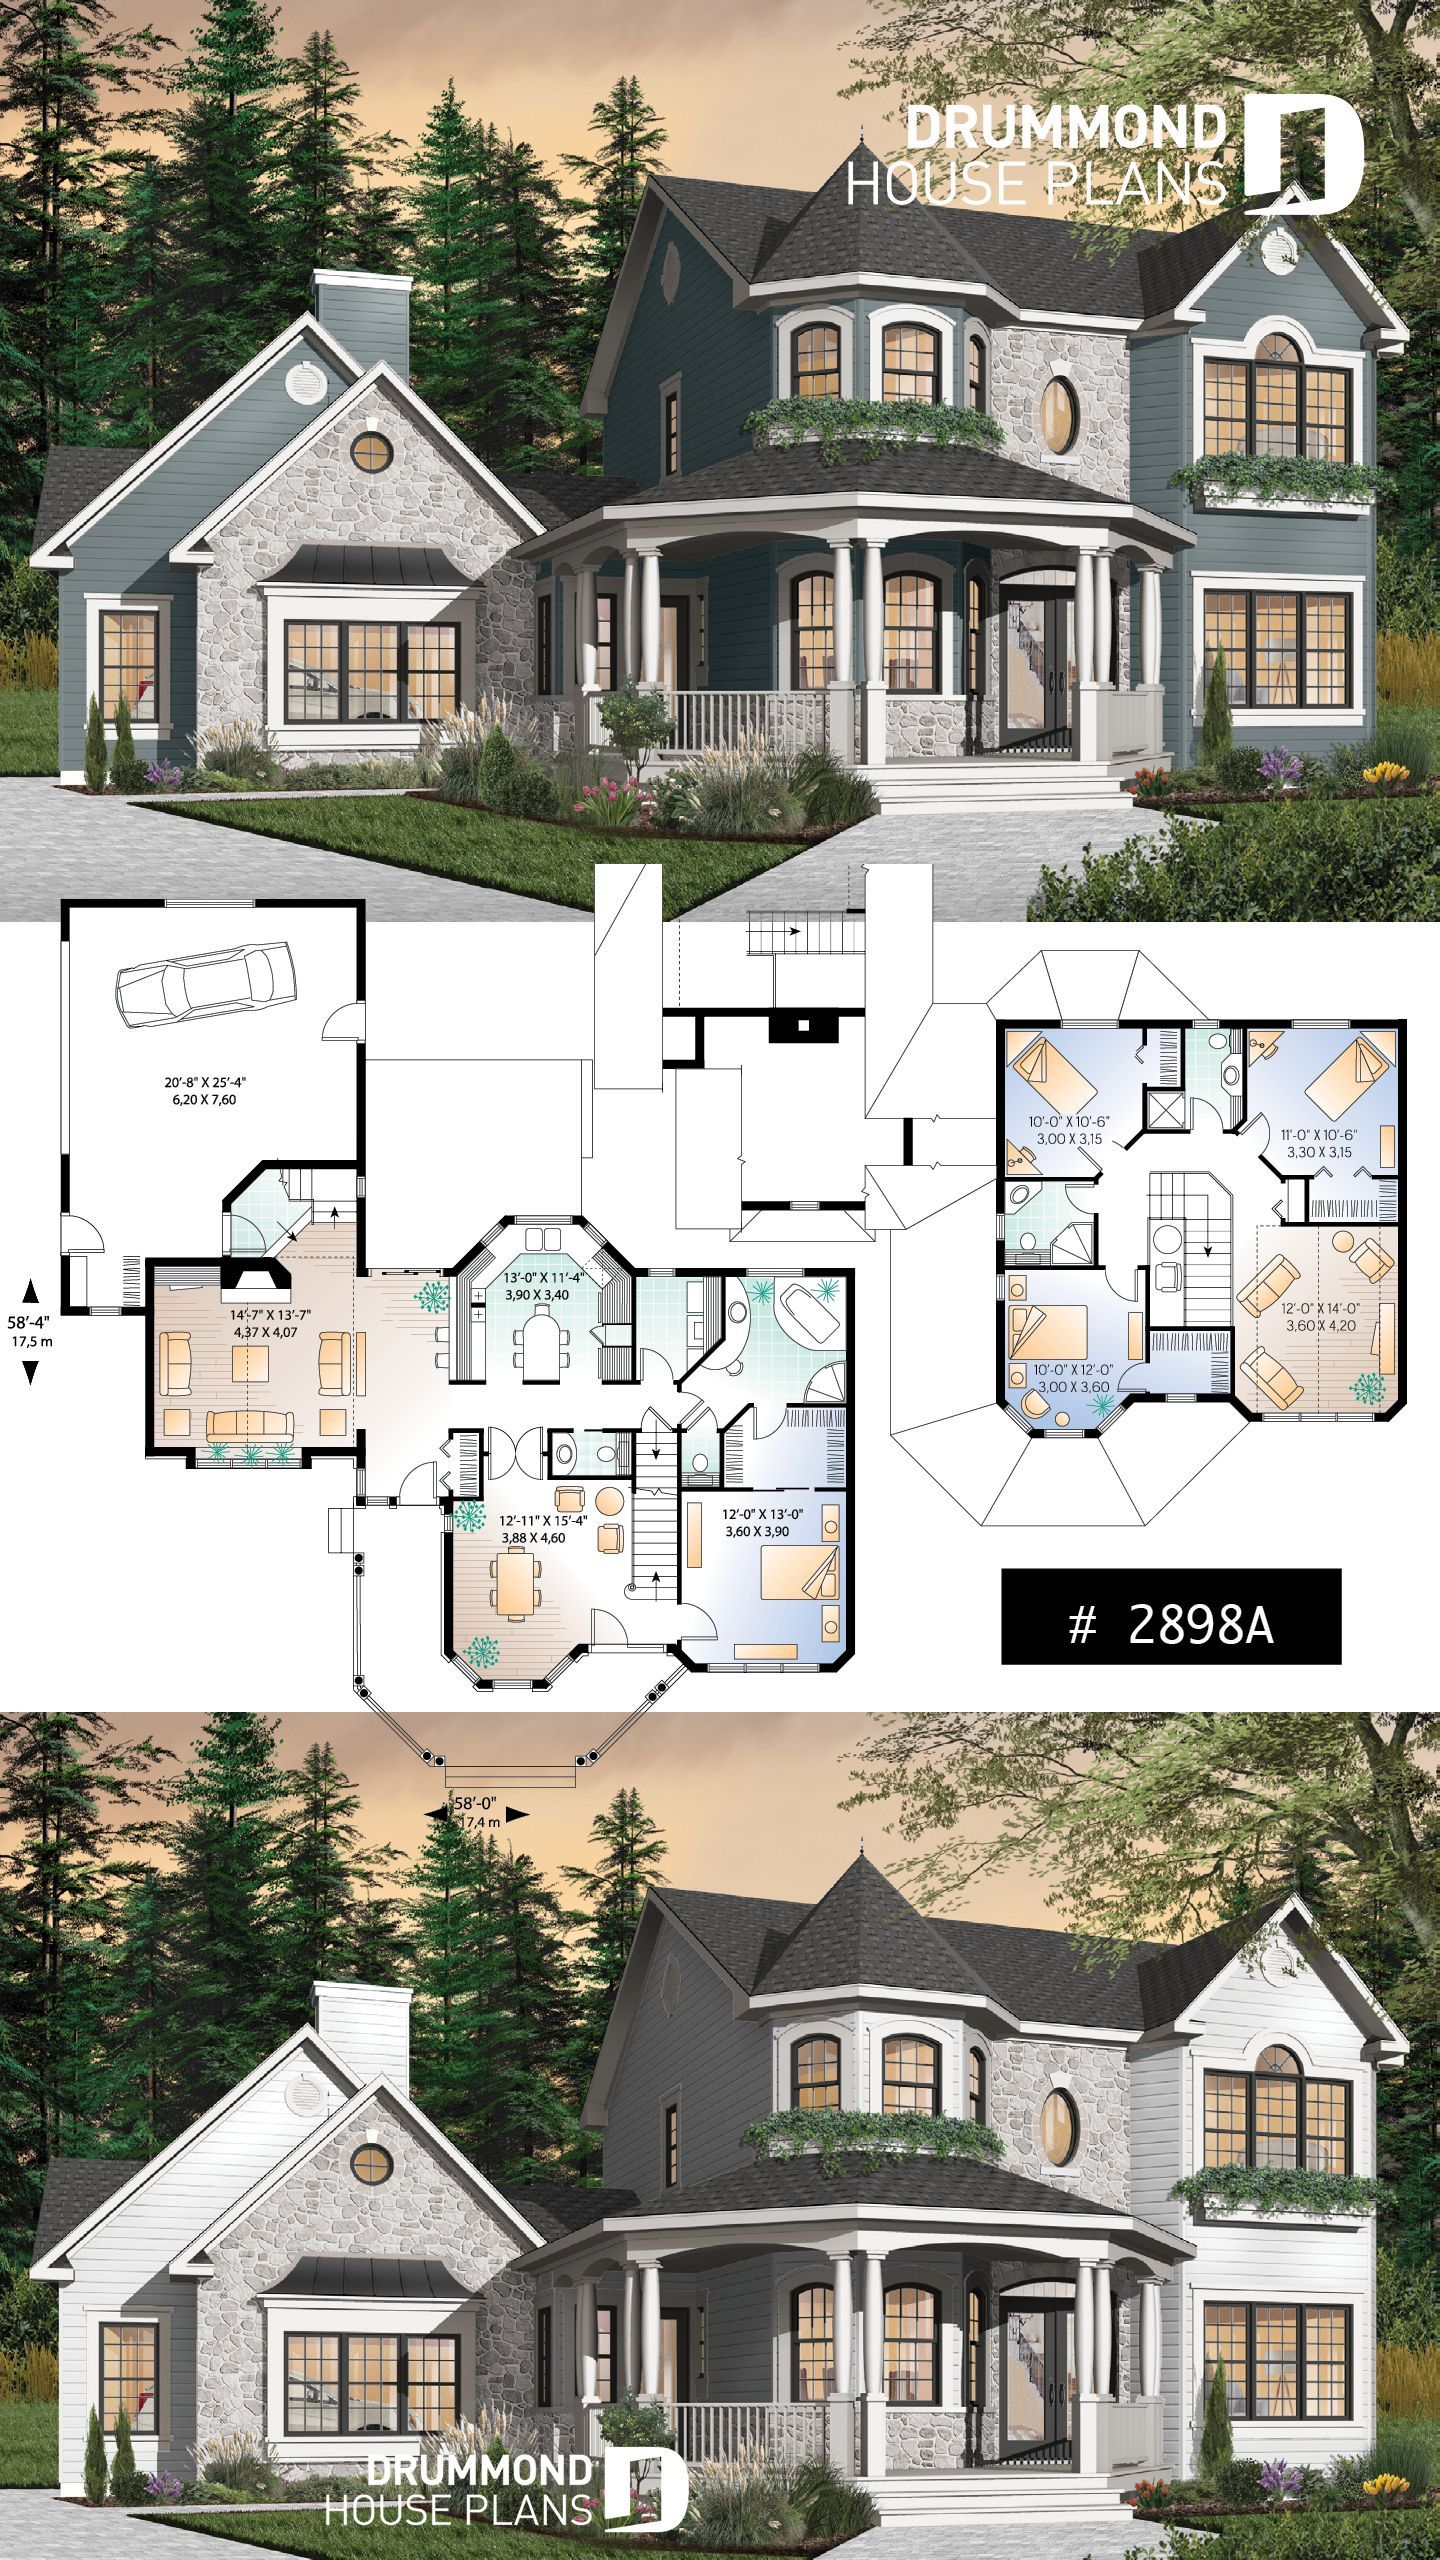 Victorian Bedroom House Planvictorian House Plan 4 Bedroom Victorian House Plans House Blueprints Sims House Plans